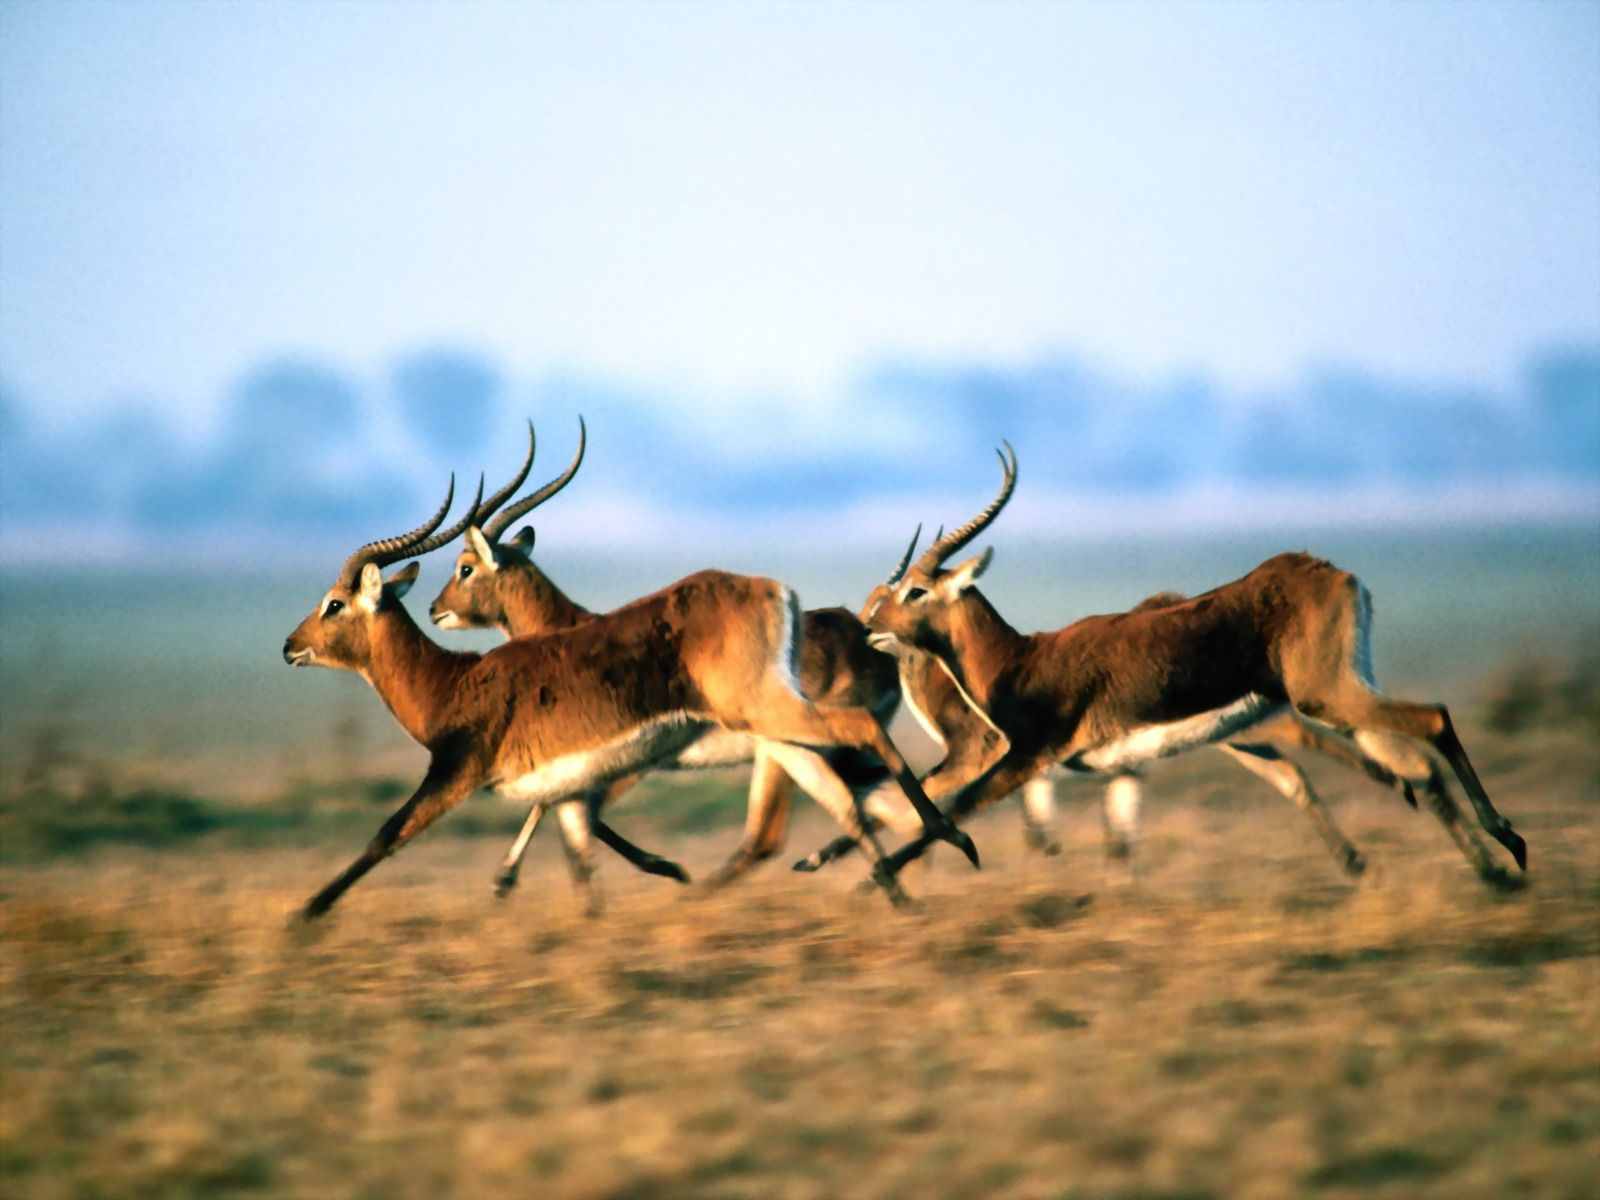 1600x1200 A herd of antelope wallpapers, photo, images, picture (A herd of ...